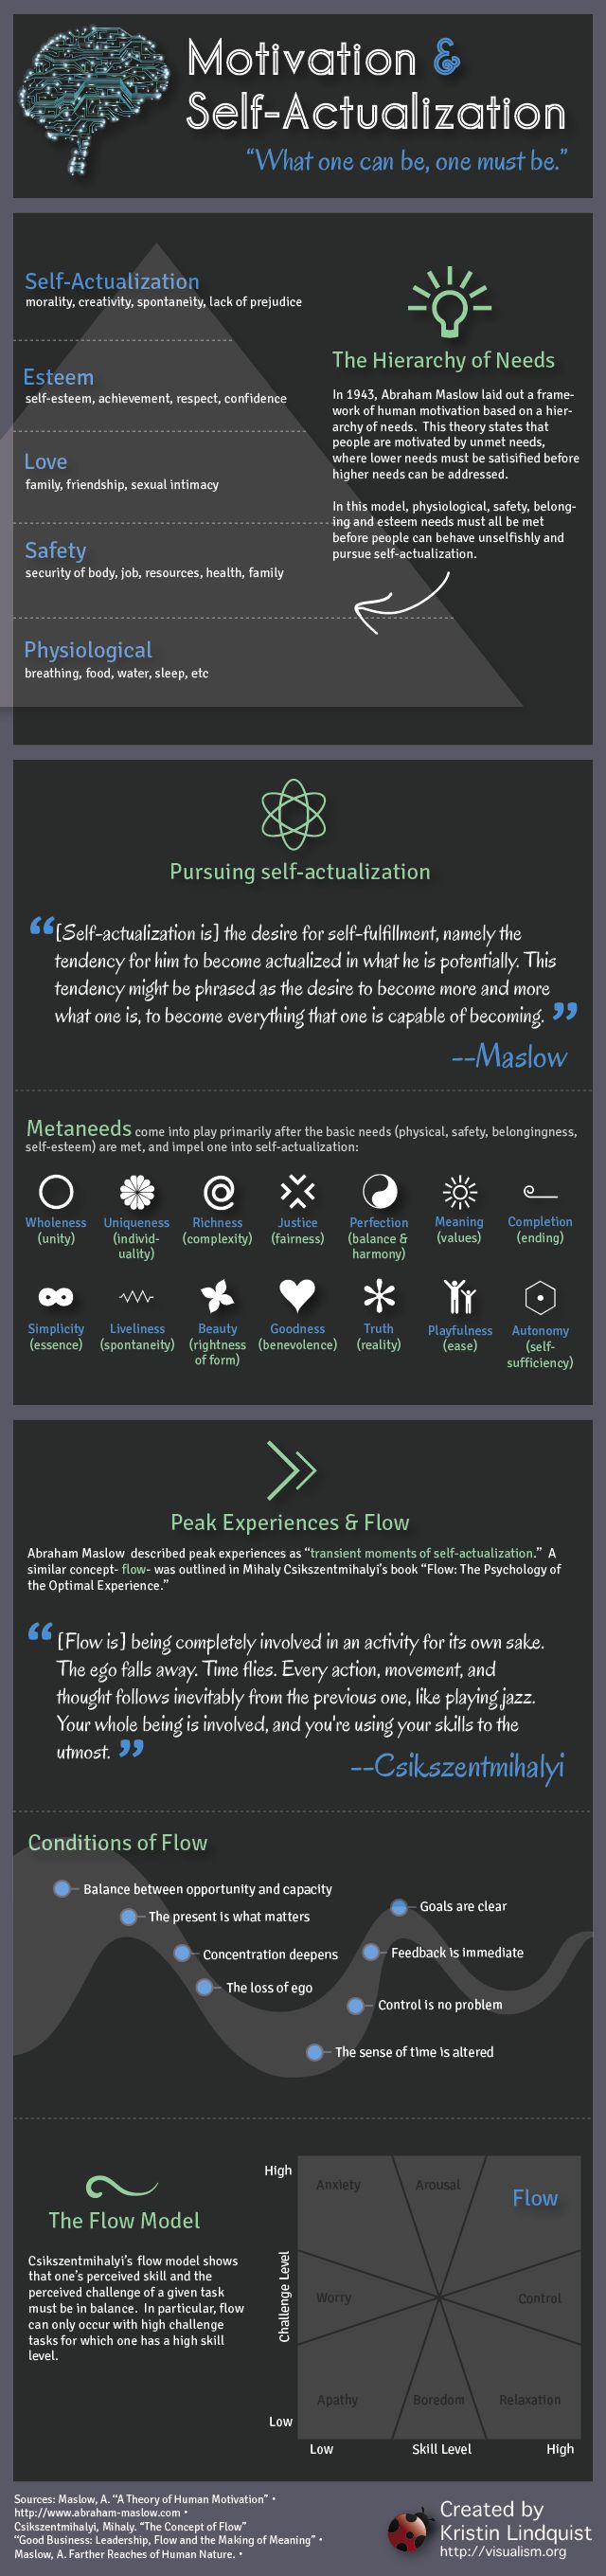 Motivation, Self-Actualization and Flow [Infographic]